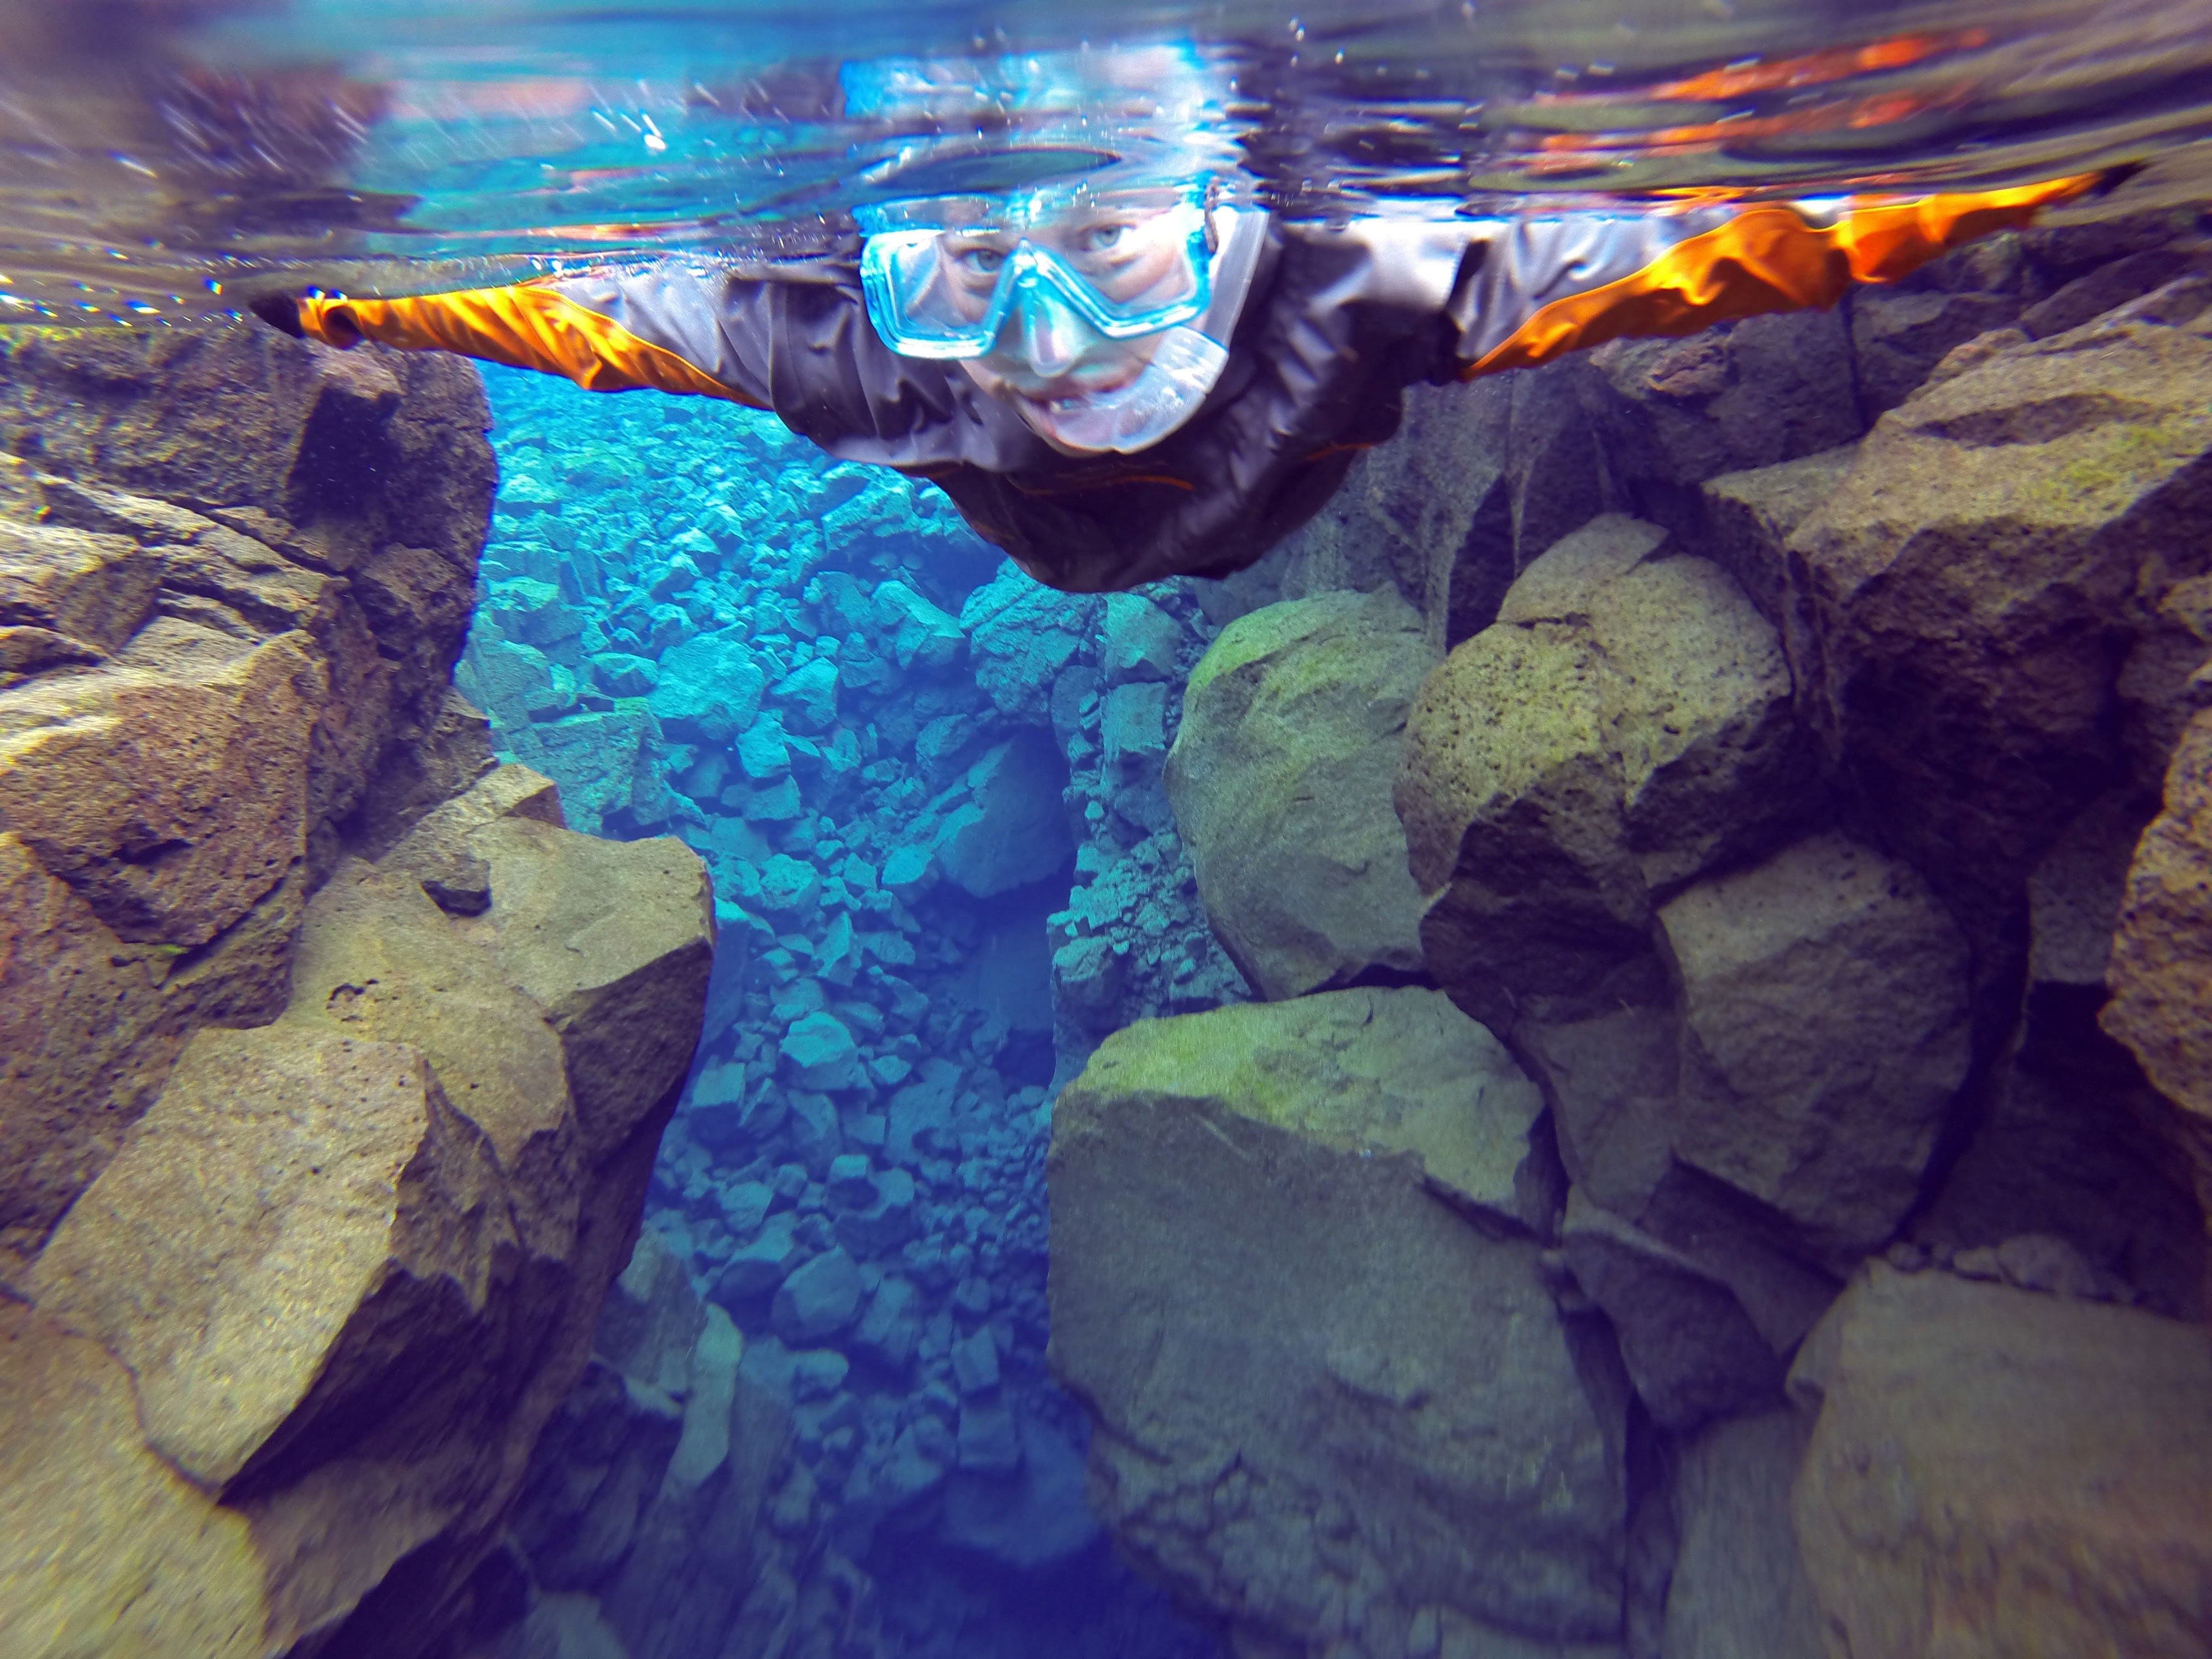 Throughout your time in Silfra, you will be wearing a drysuit - these protect you from both the cold and keep you buoyant in the water.